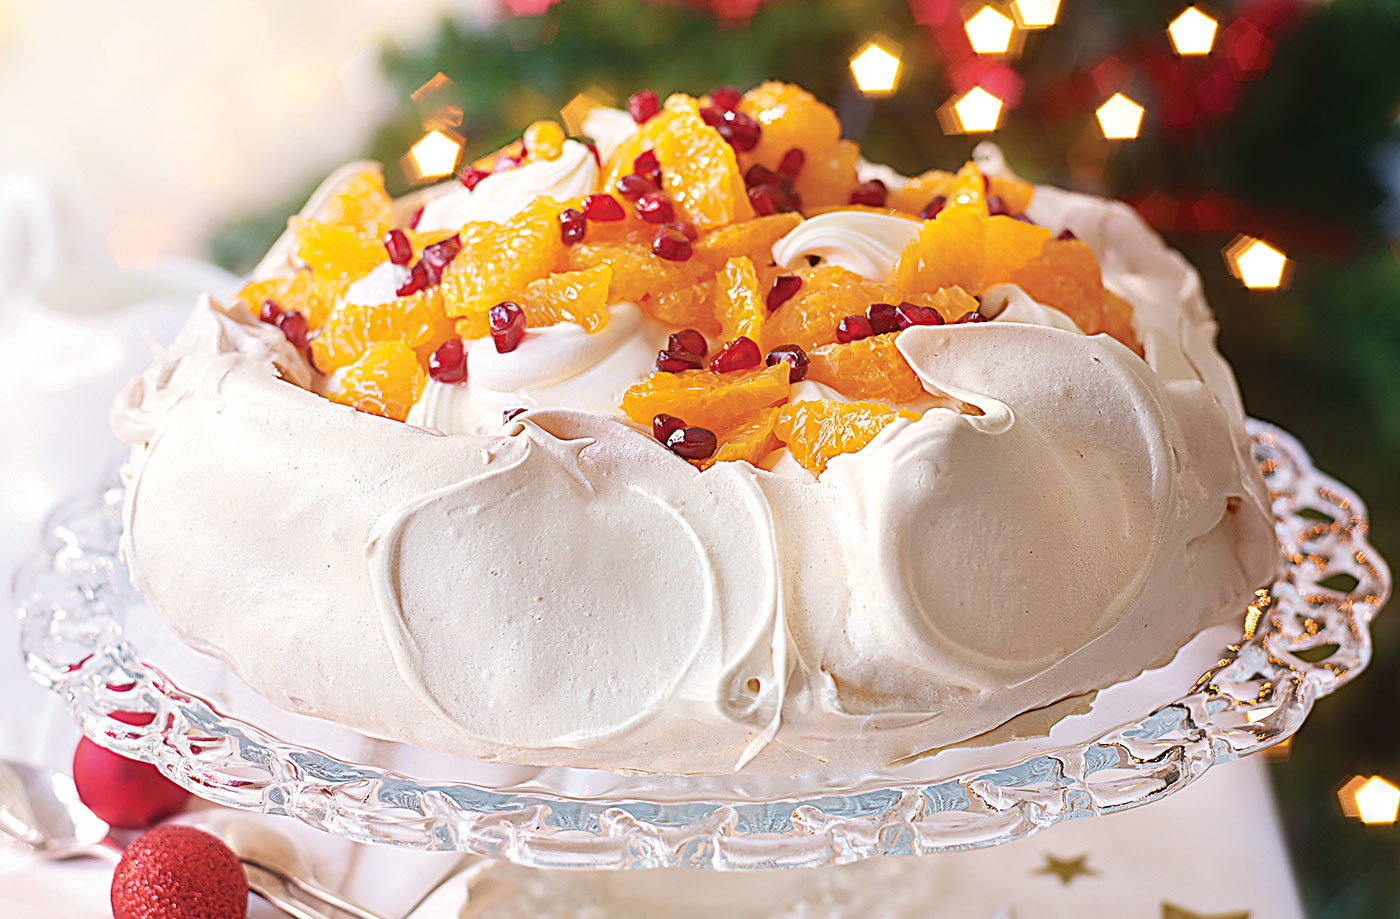 Pomegranate and clementine Pavlova recipe